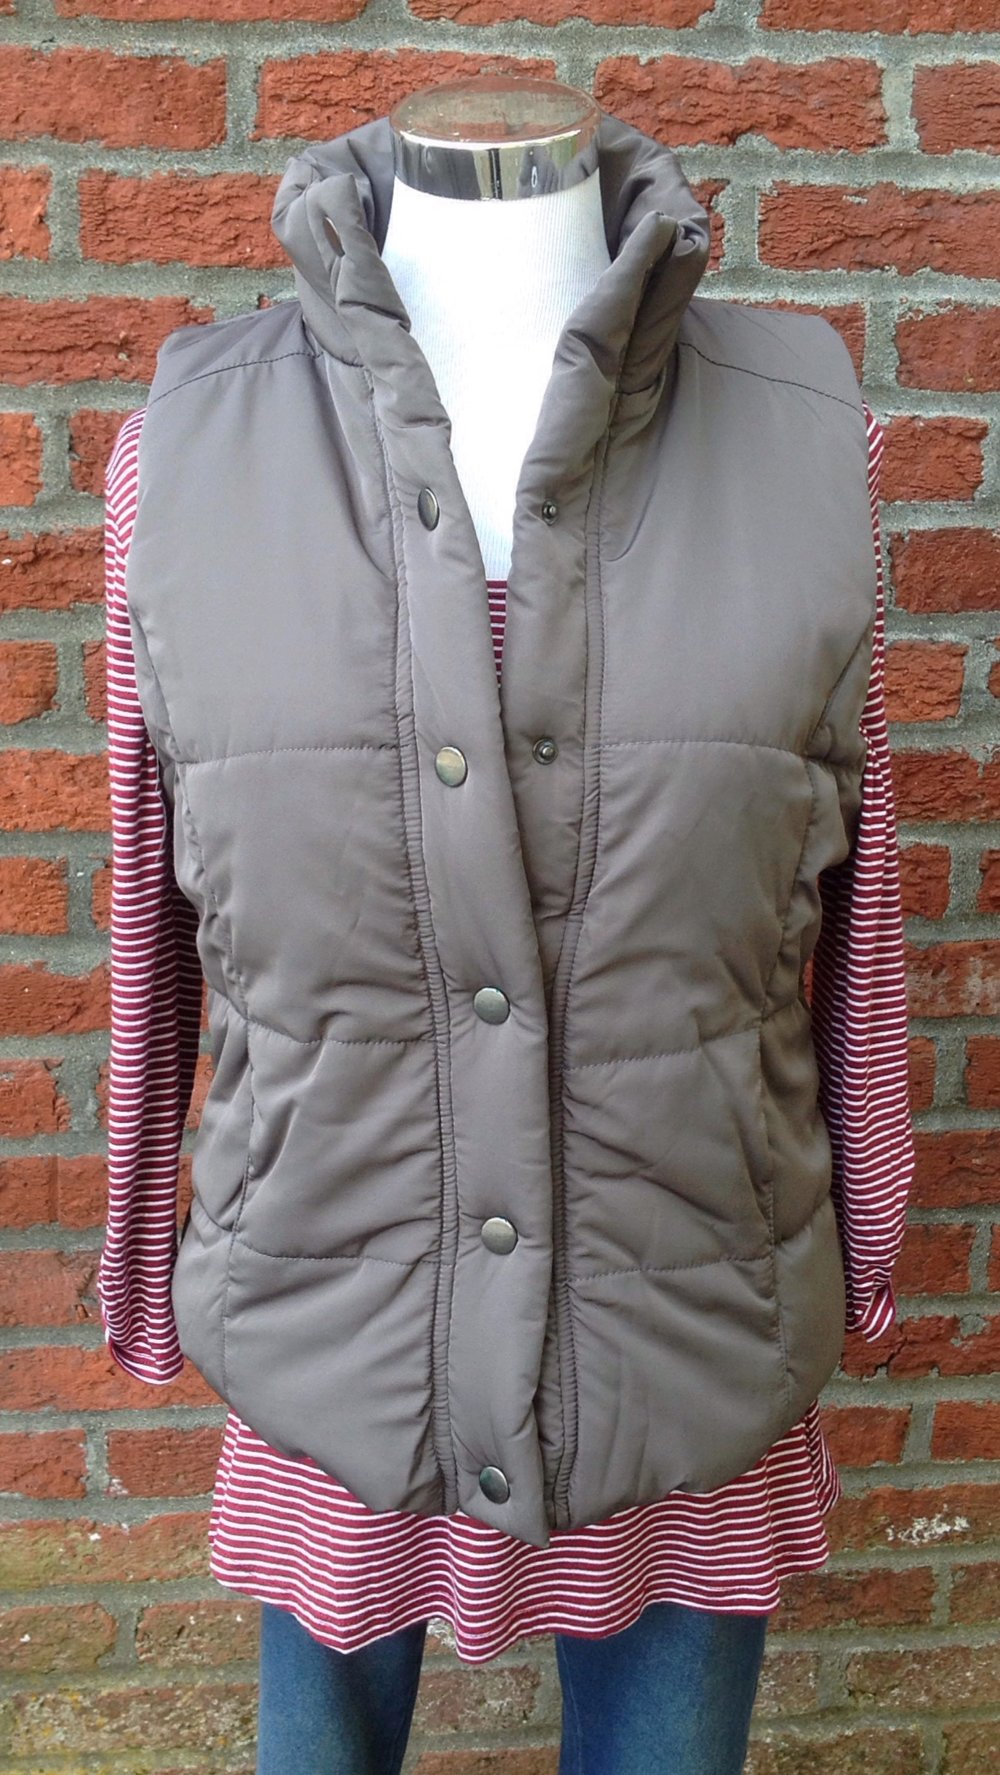 Grey snap front puff vest with side pockets and shearling lining, $48